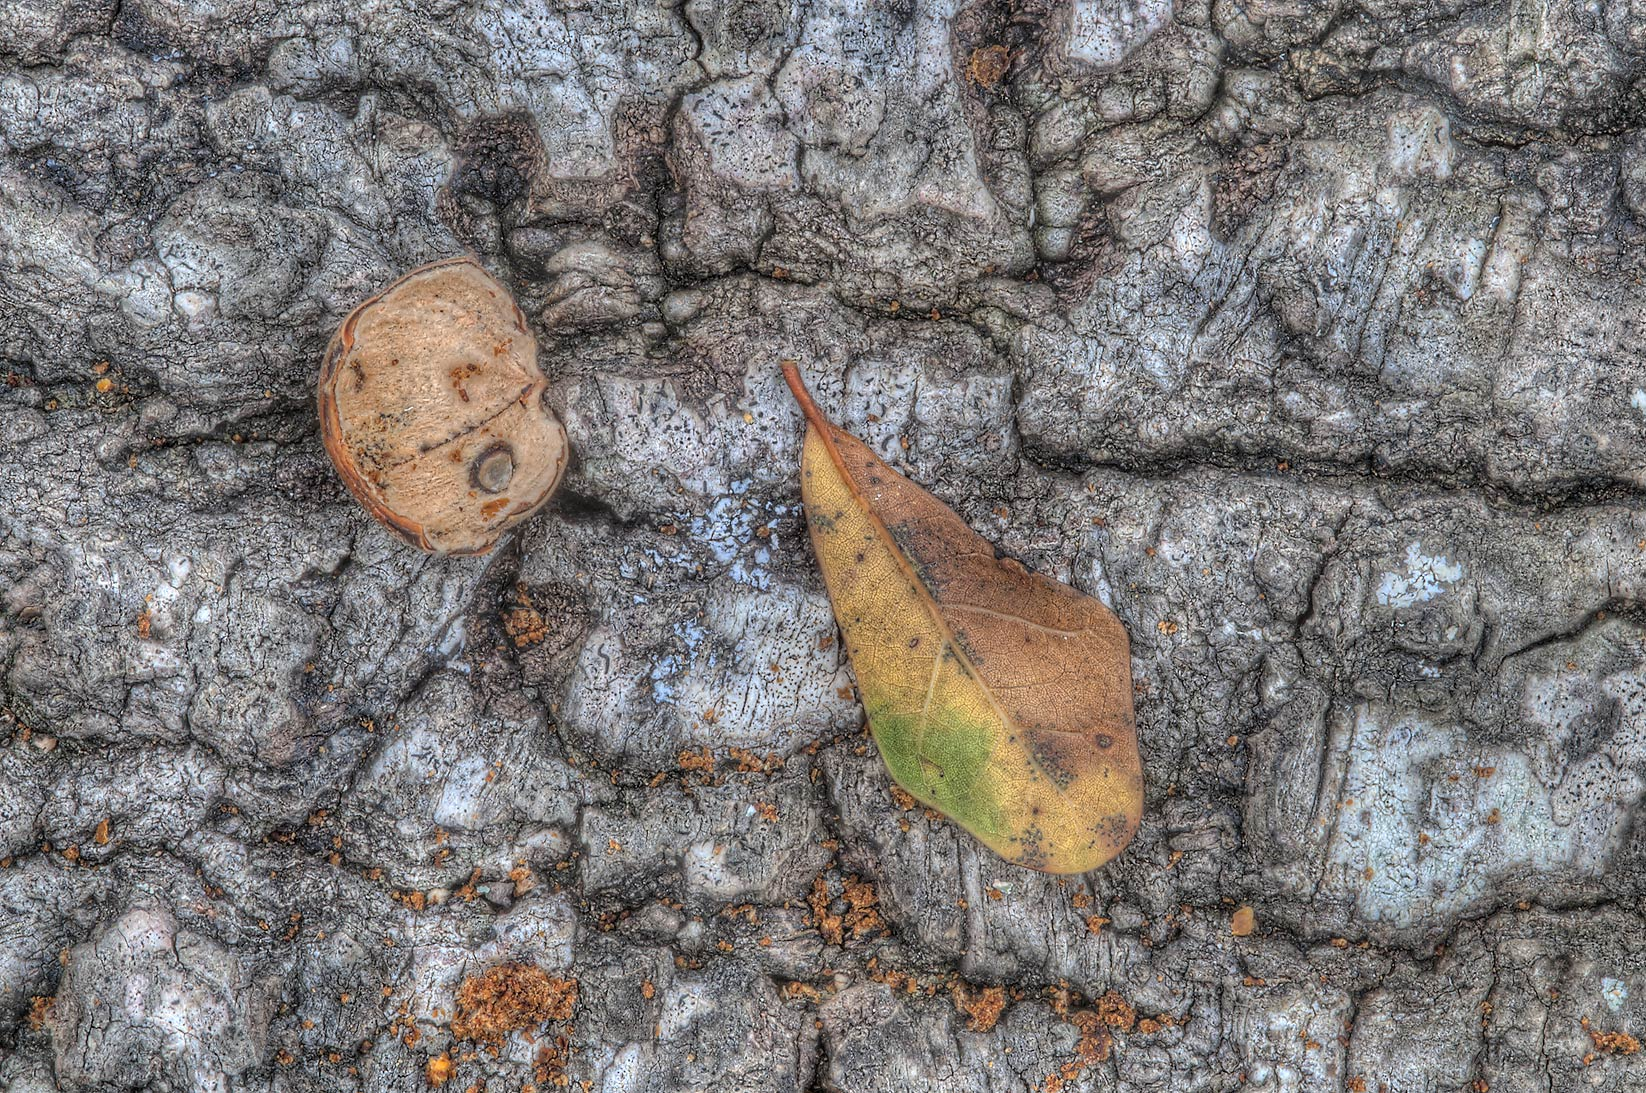 Eaten acorn on a log near Racoon Run Trail in Lick Creek Park. College Station, Texas